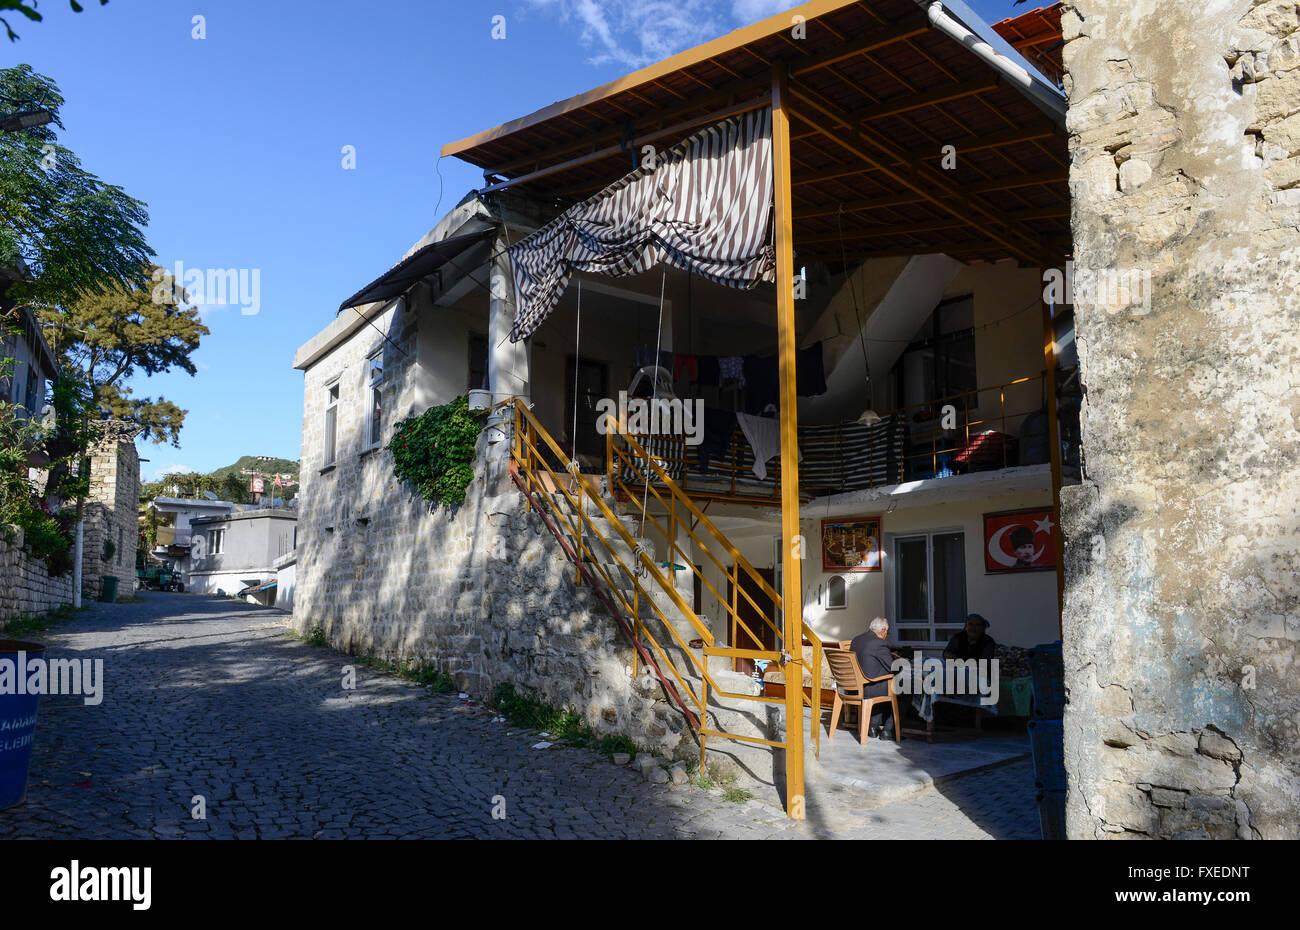 TURKEY Antakya, Musa Dagh, former armenian village Hidirbey, about 4000 armenian villagers fled during the genocide - Stock Image